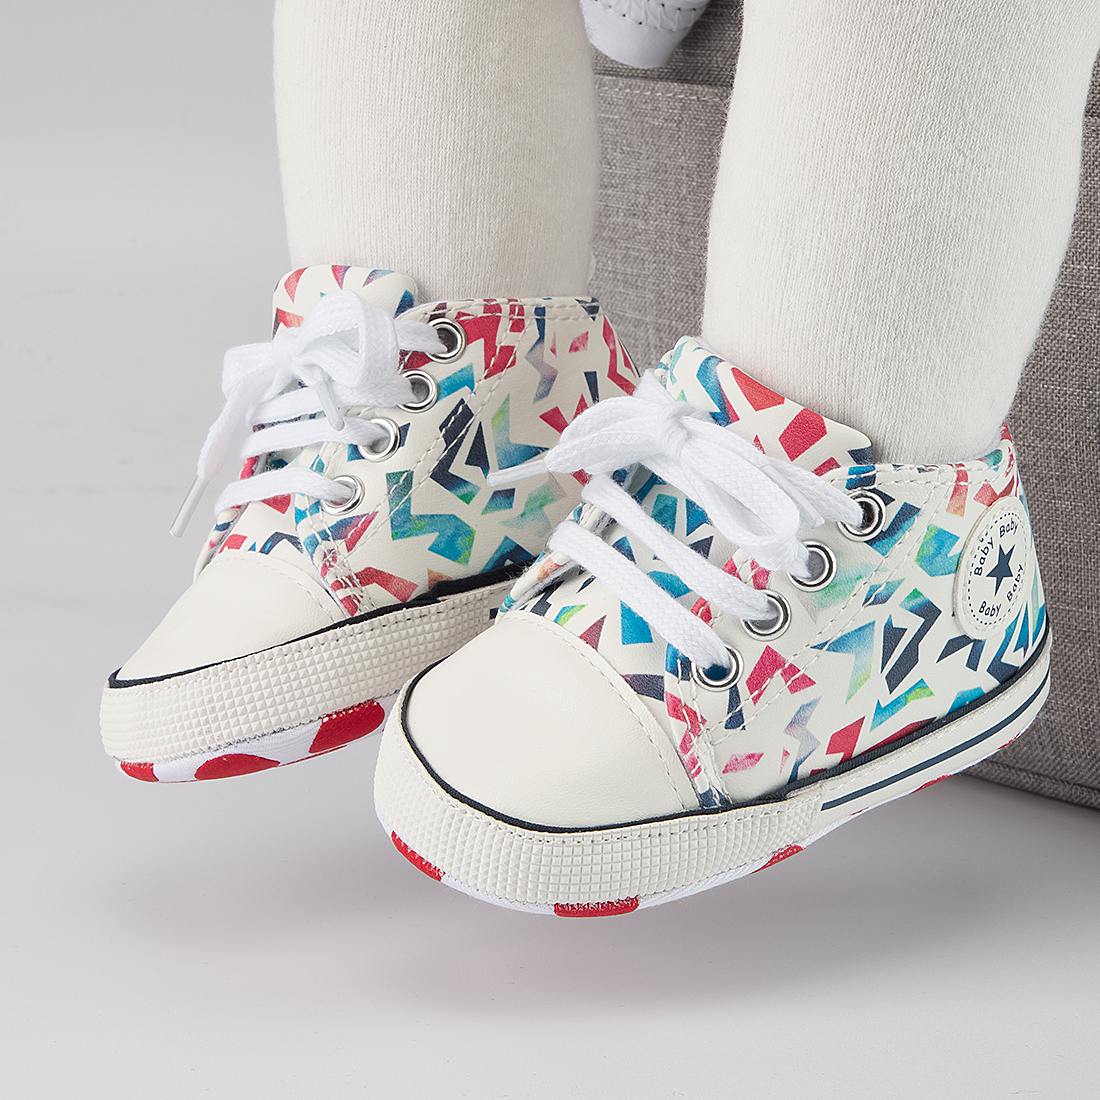 Baby Boys Girls First Walkers Shoes Infant Toddler Soft Sole Anti-slip Baby Shoes Newborn Canvas Baby Sports Sneakers Shoes 6